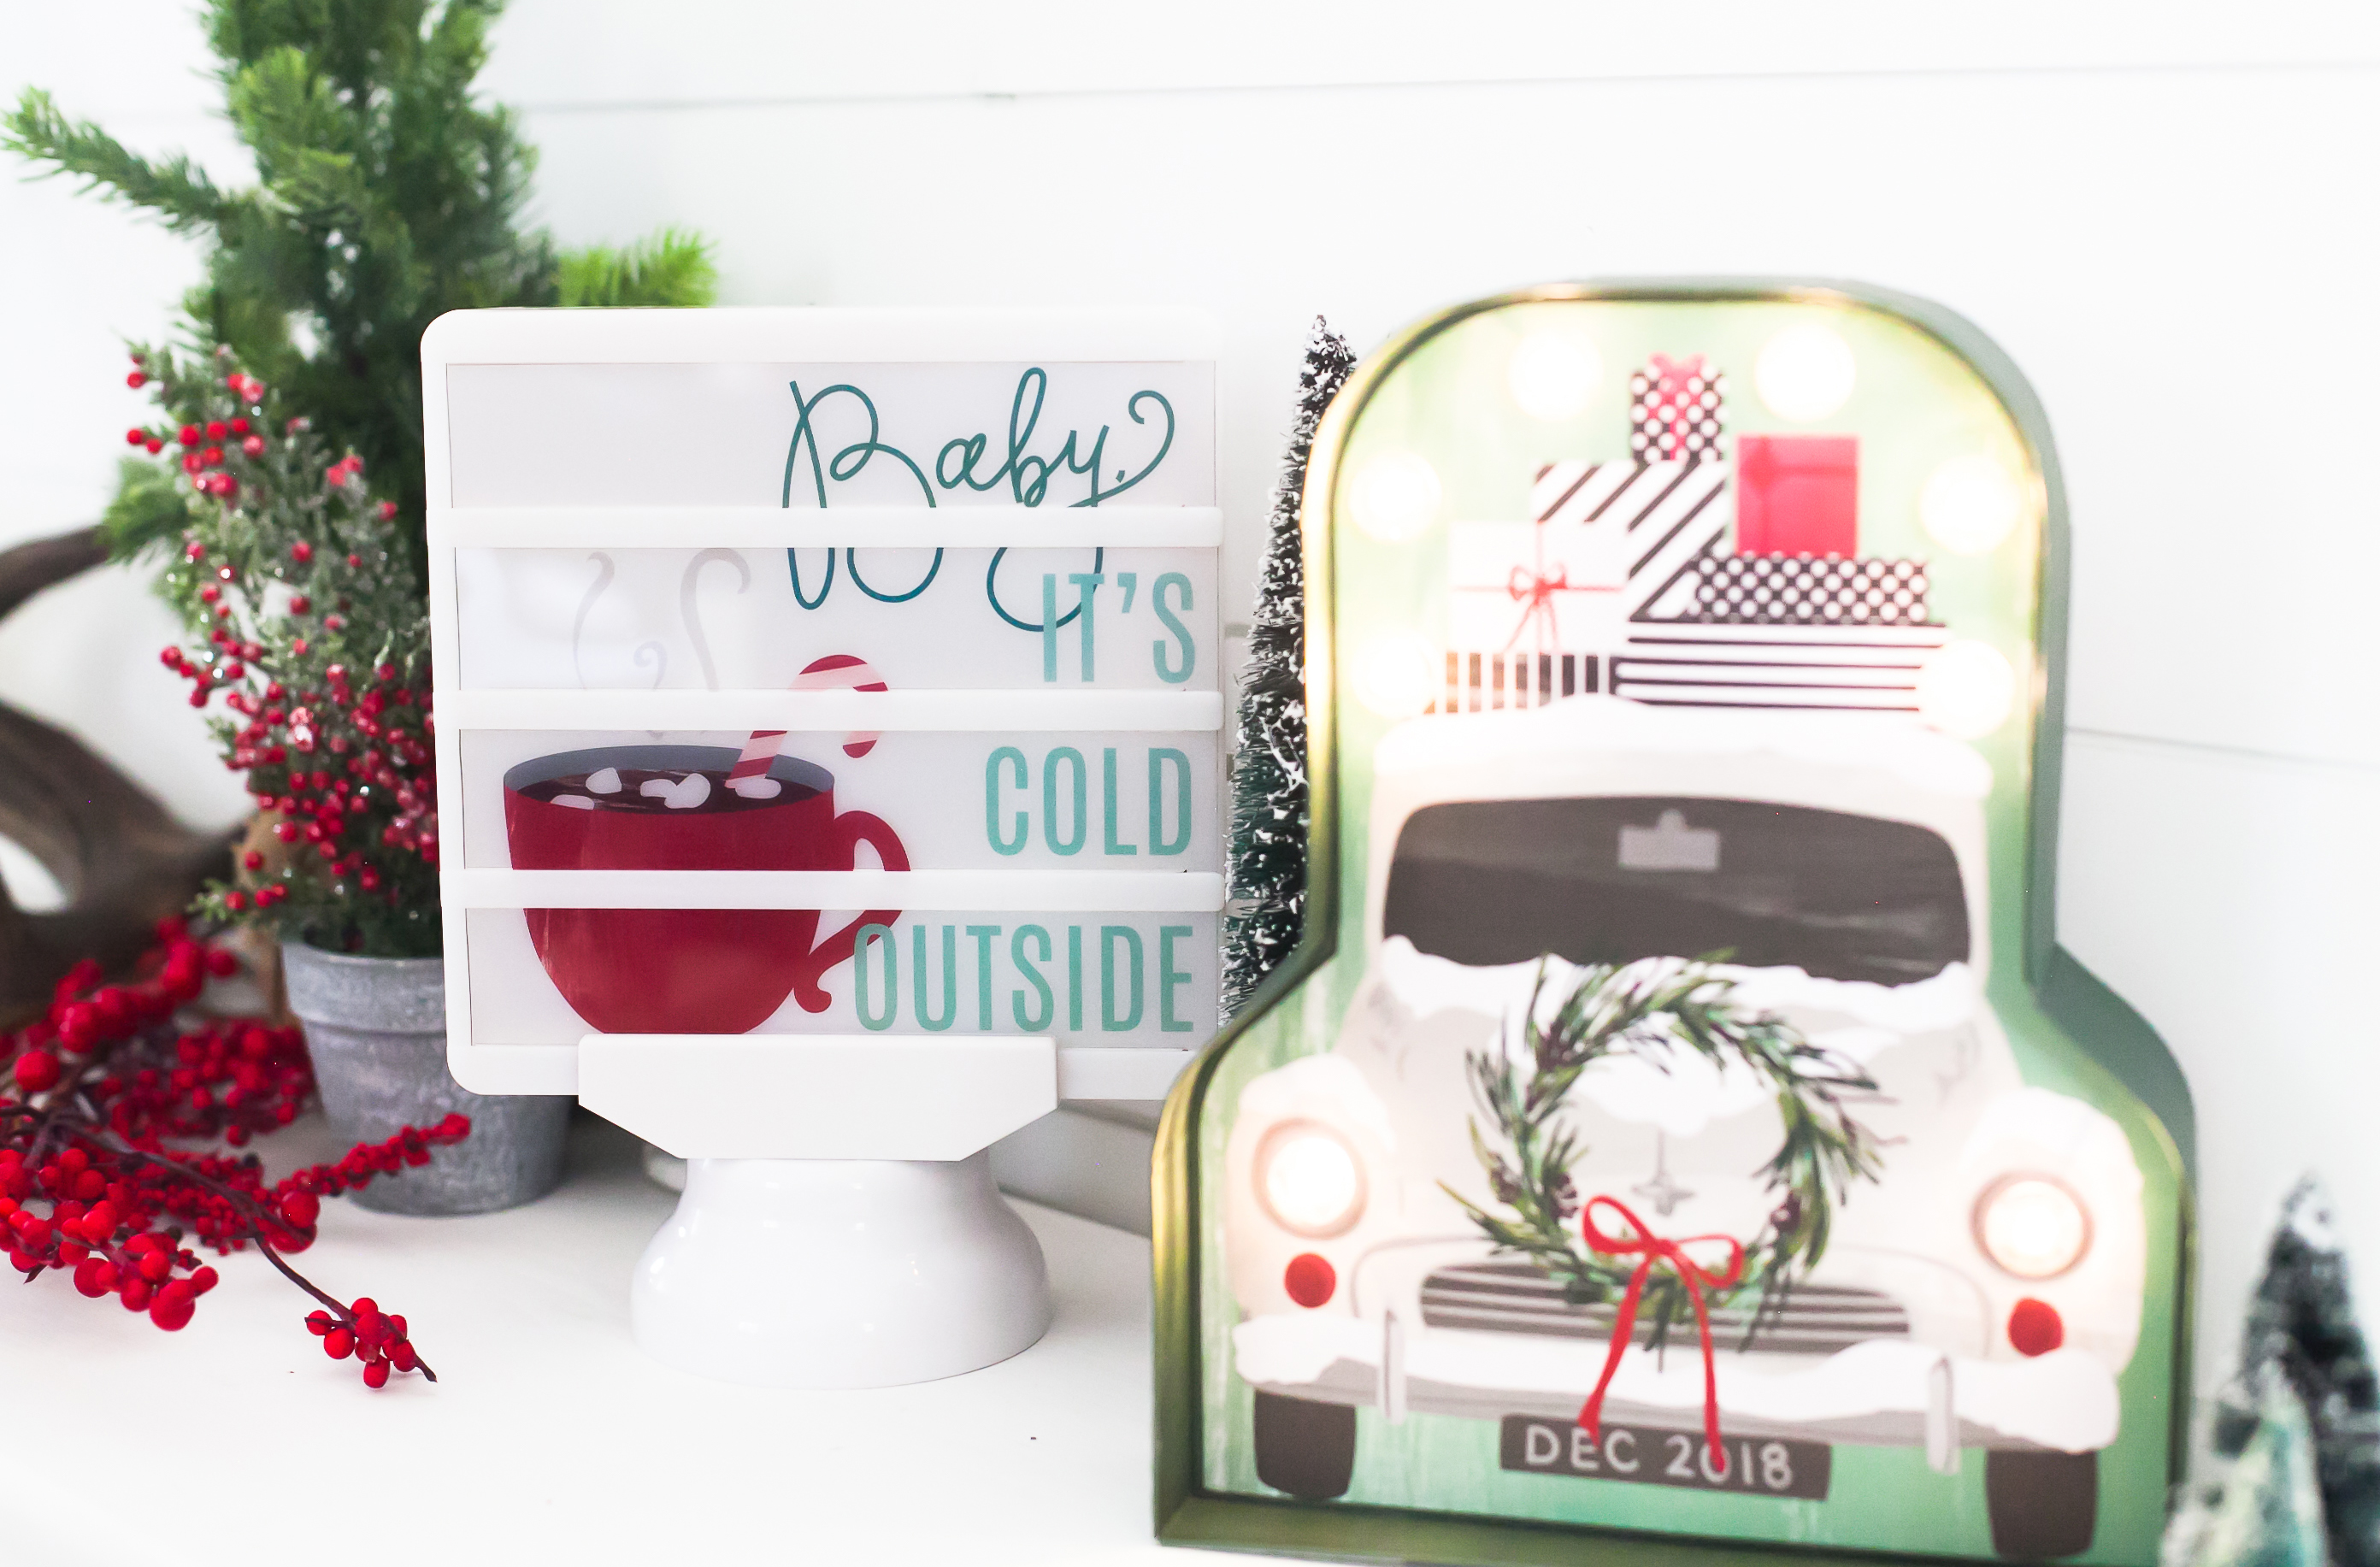 Heidi Holiday Lightbox by Jamie Pate | @jamiepate for @heidiswapp